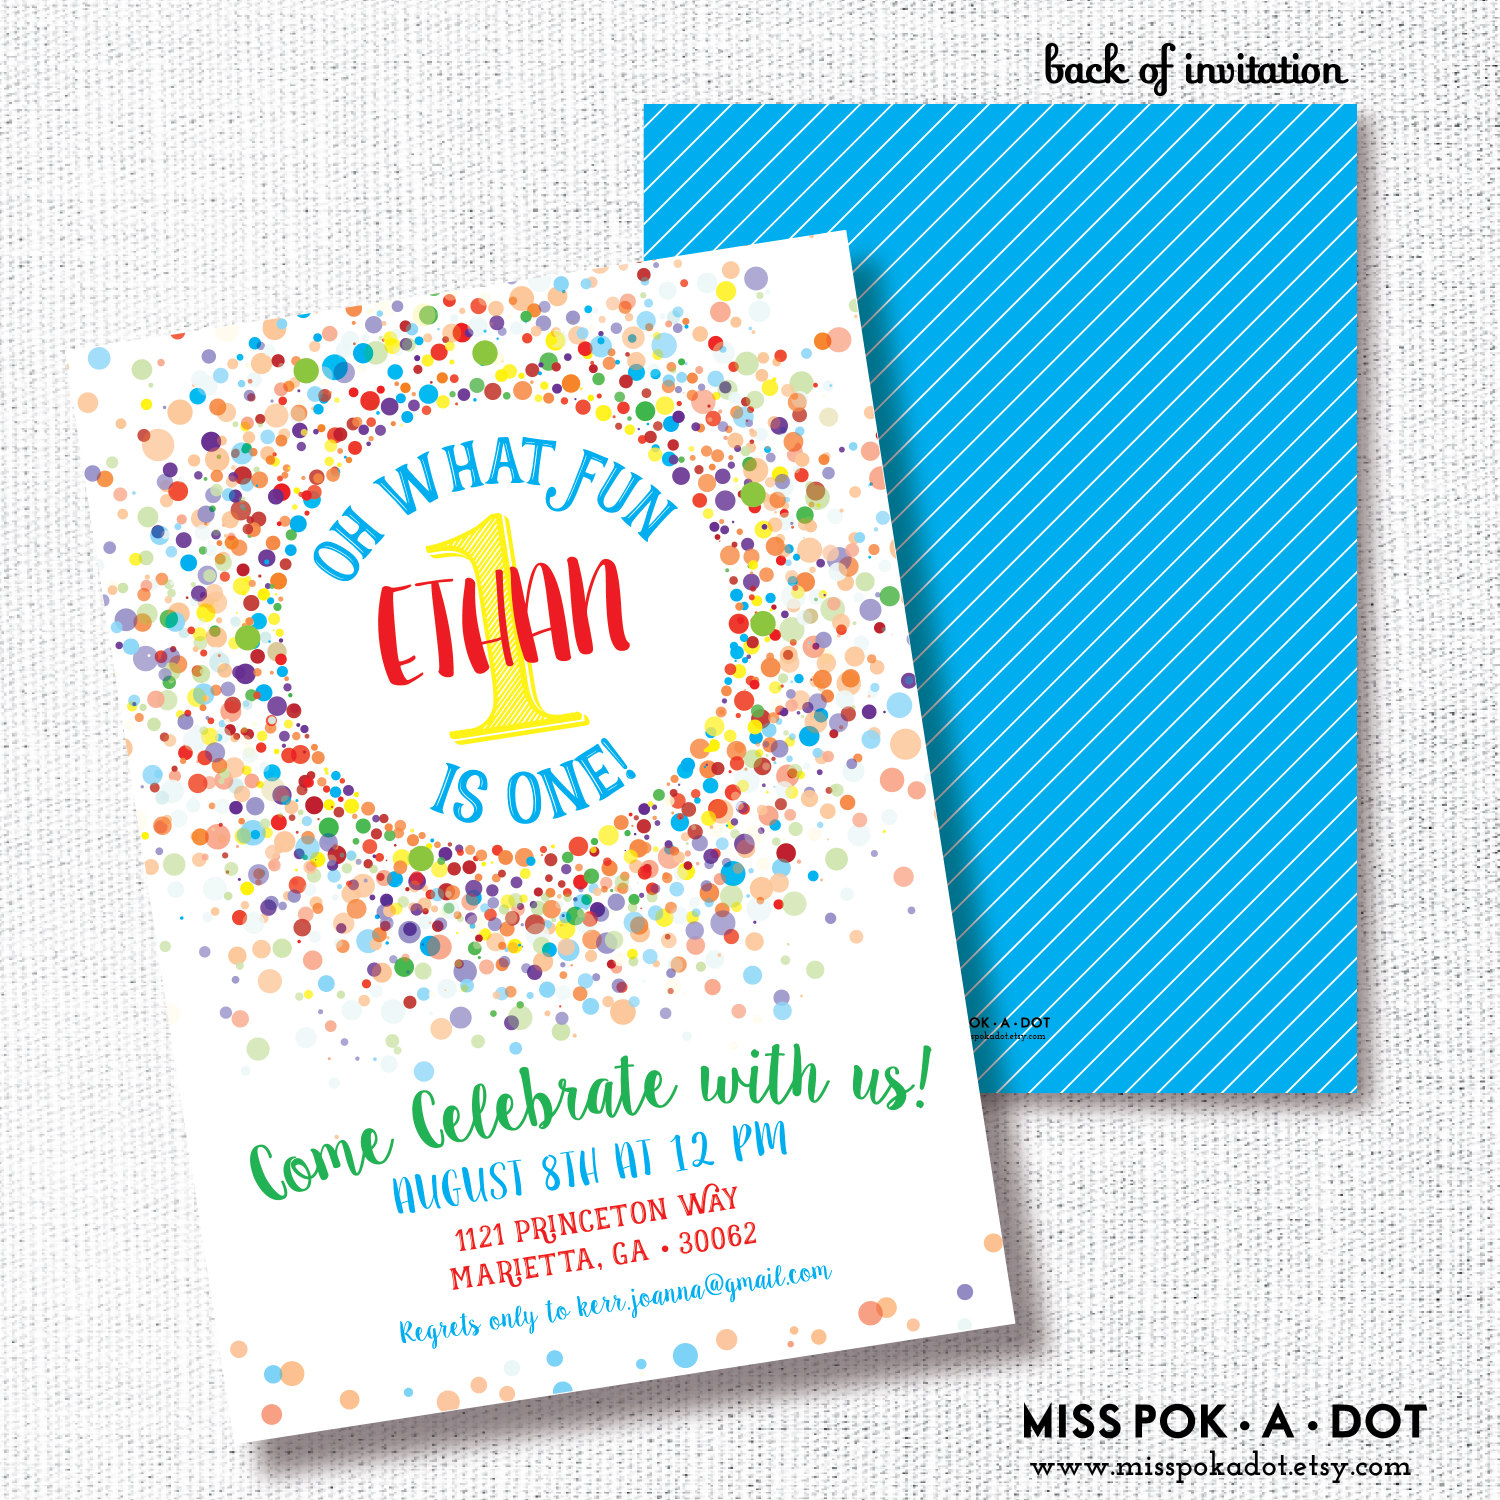 colorful birthday party invitations ; f08db8099d16c8d1b3e04cf8ef586e3a